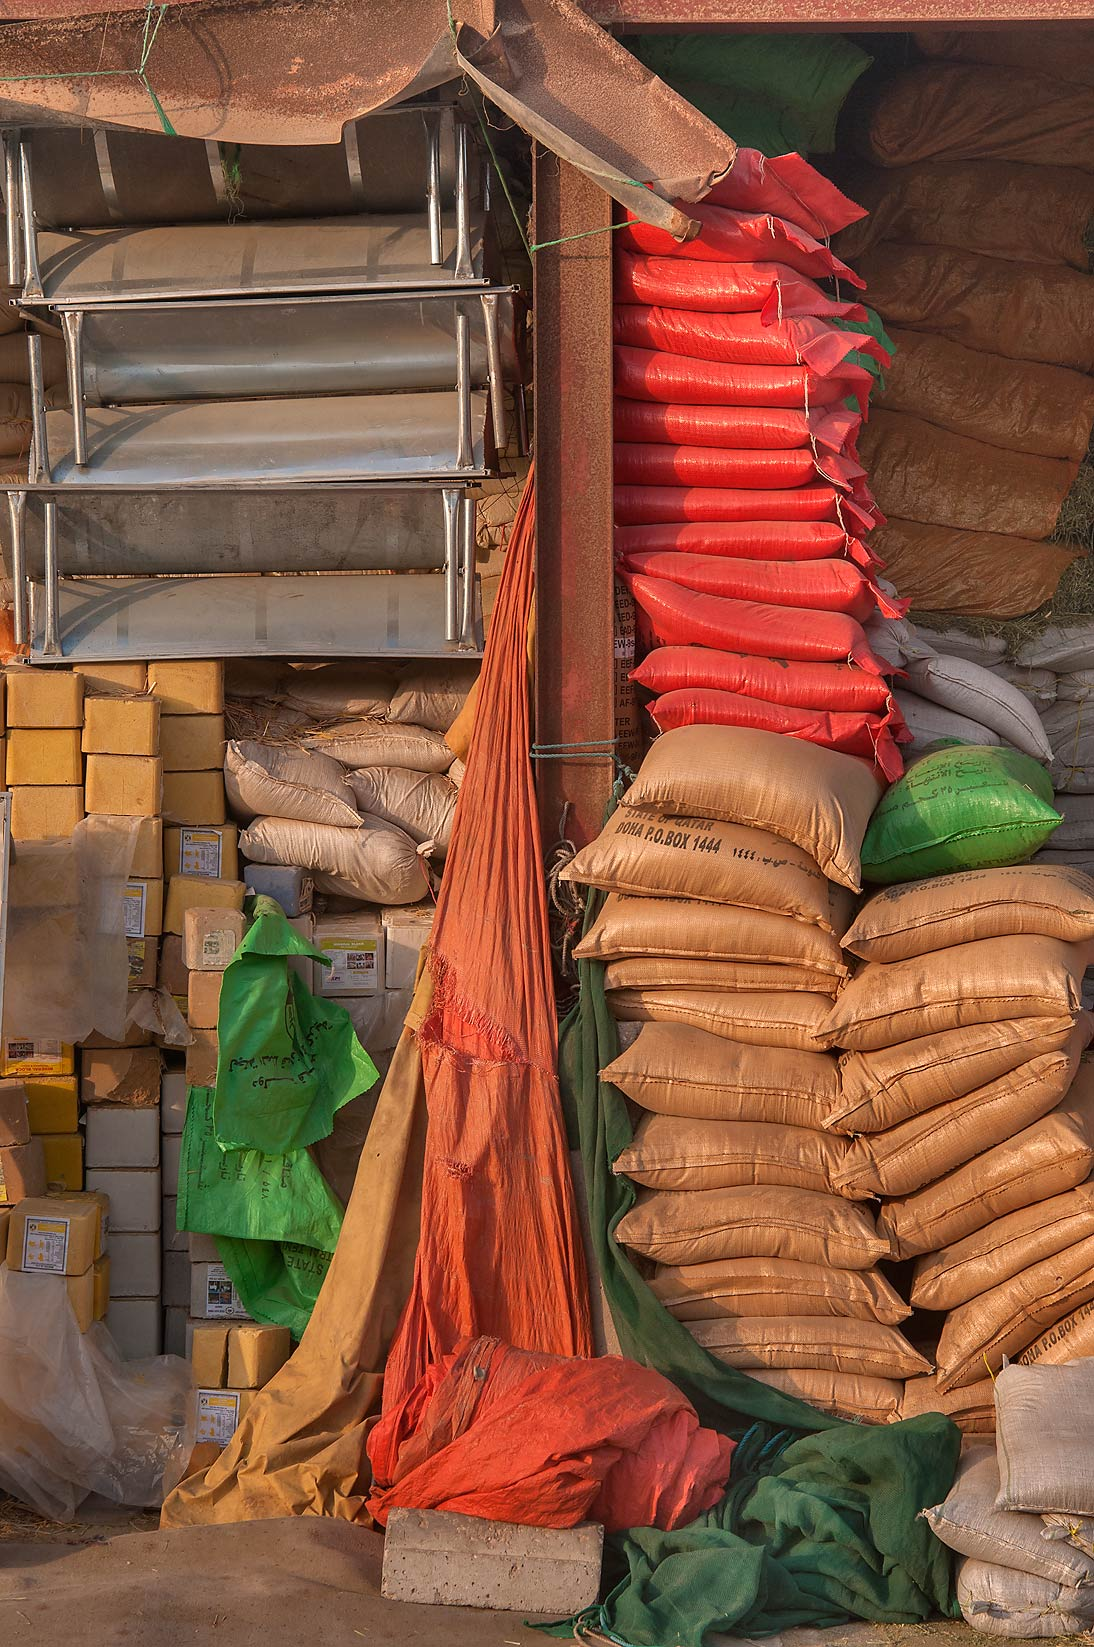 Bags with fodder in Livestock Market, Wholesale Markets area. Doha, Qatar